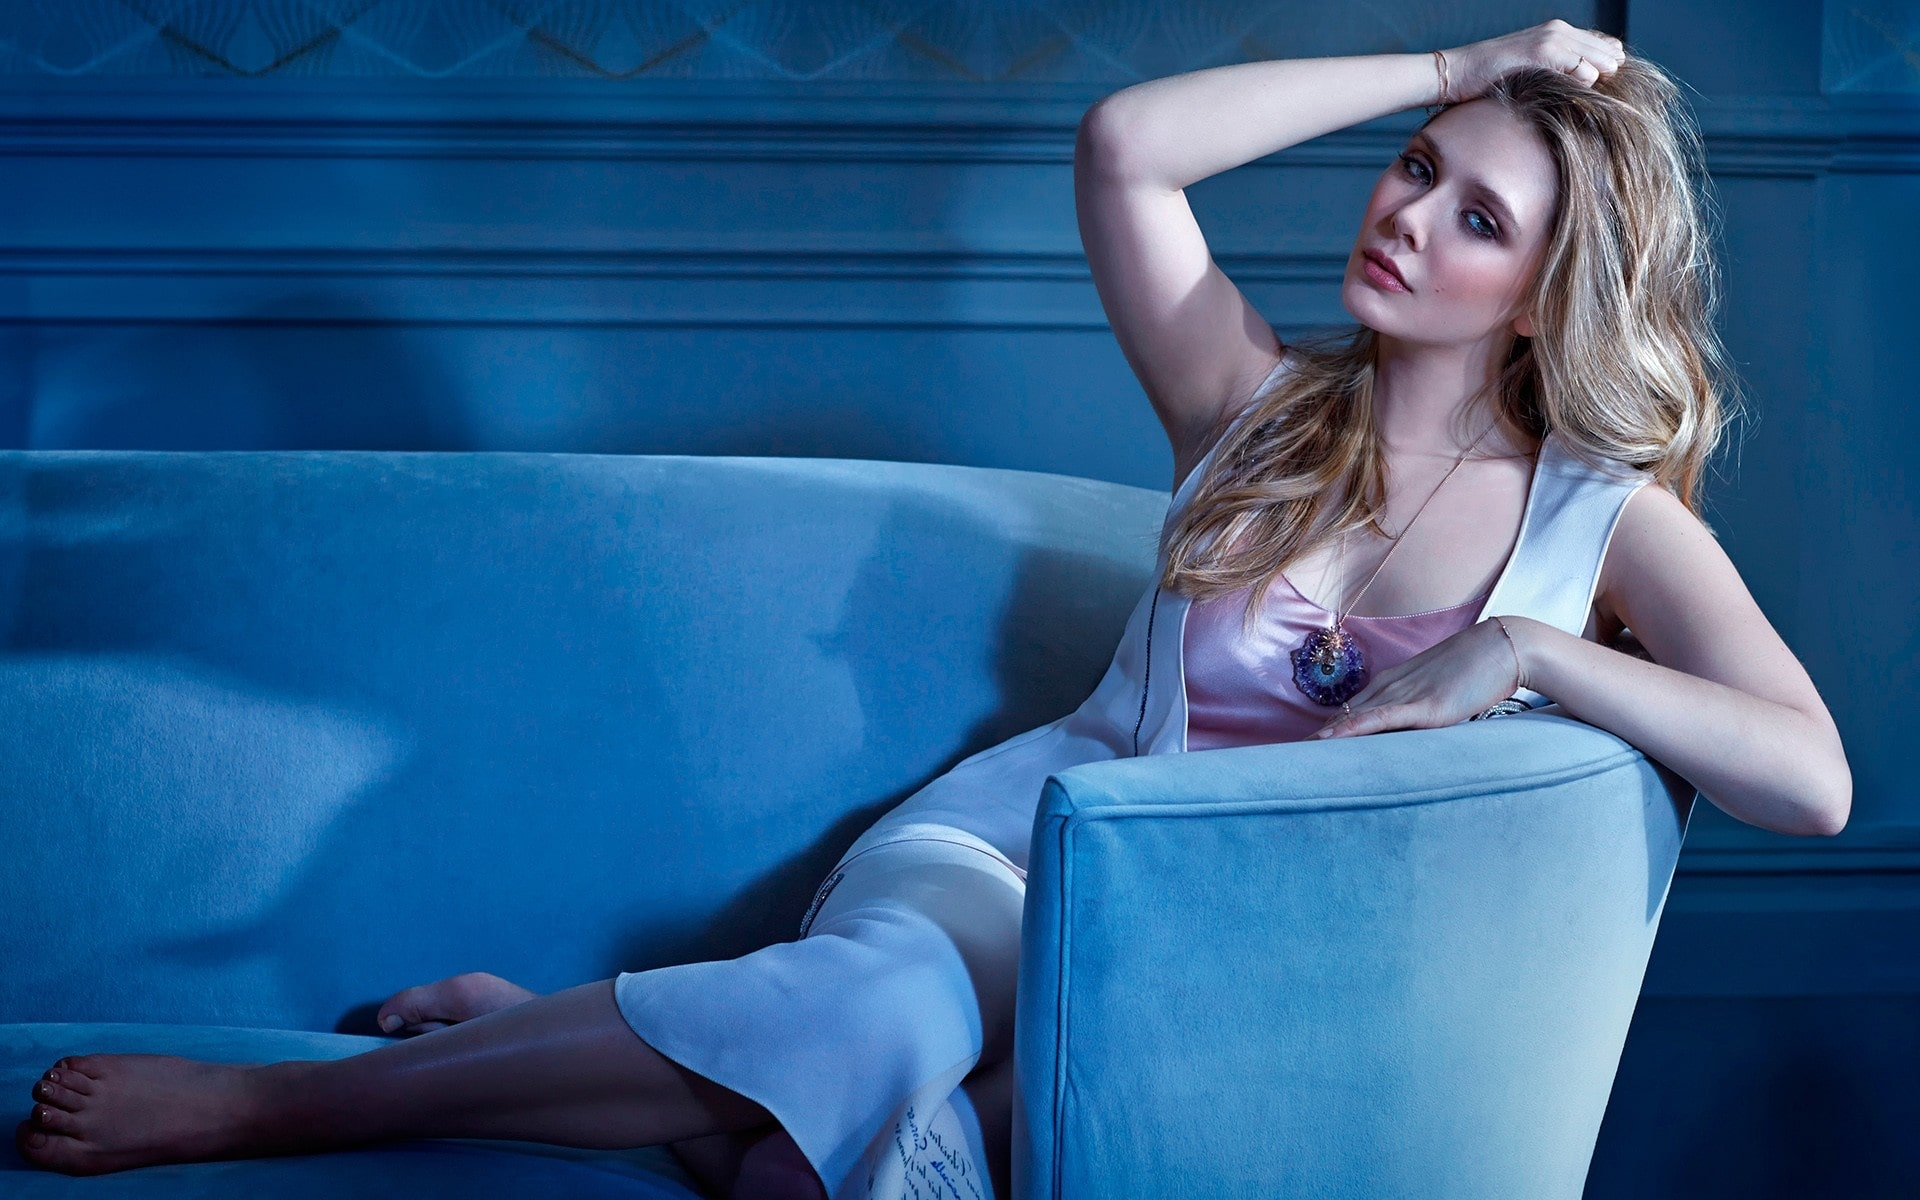 Elizabeth-Olsen-Hot-Photoshoot